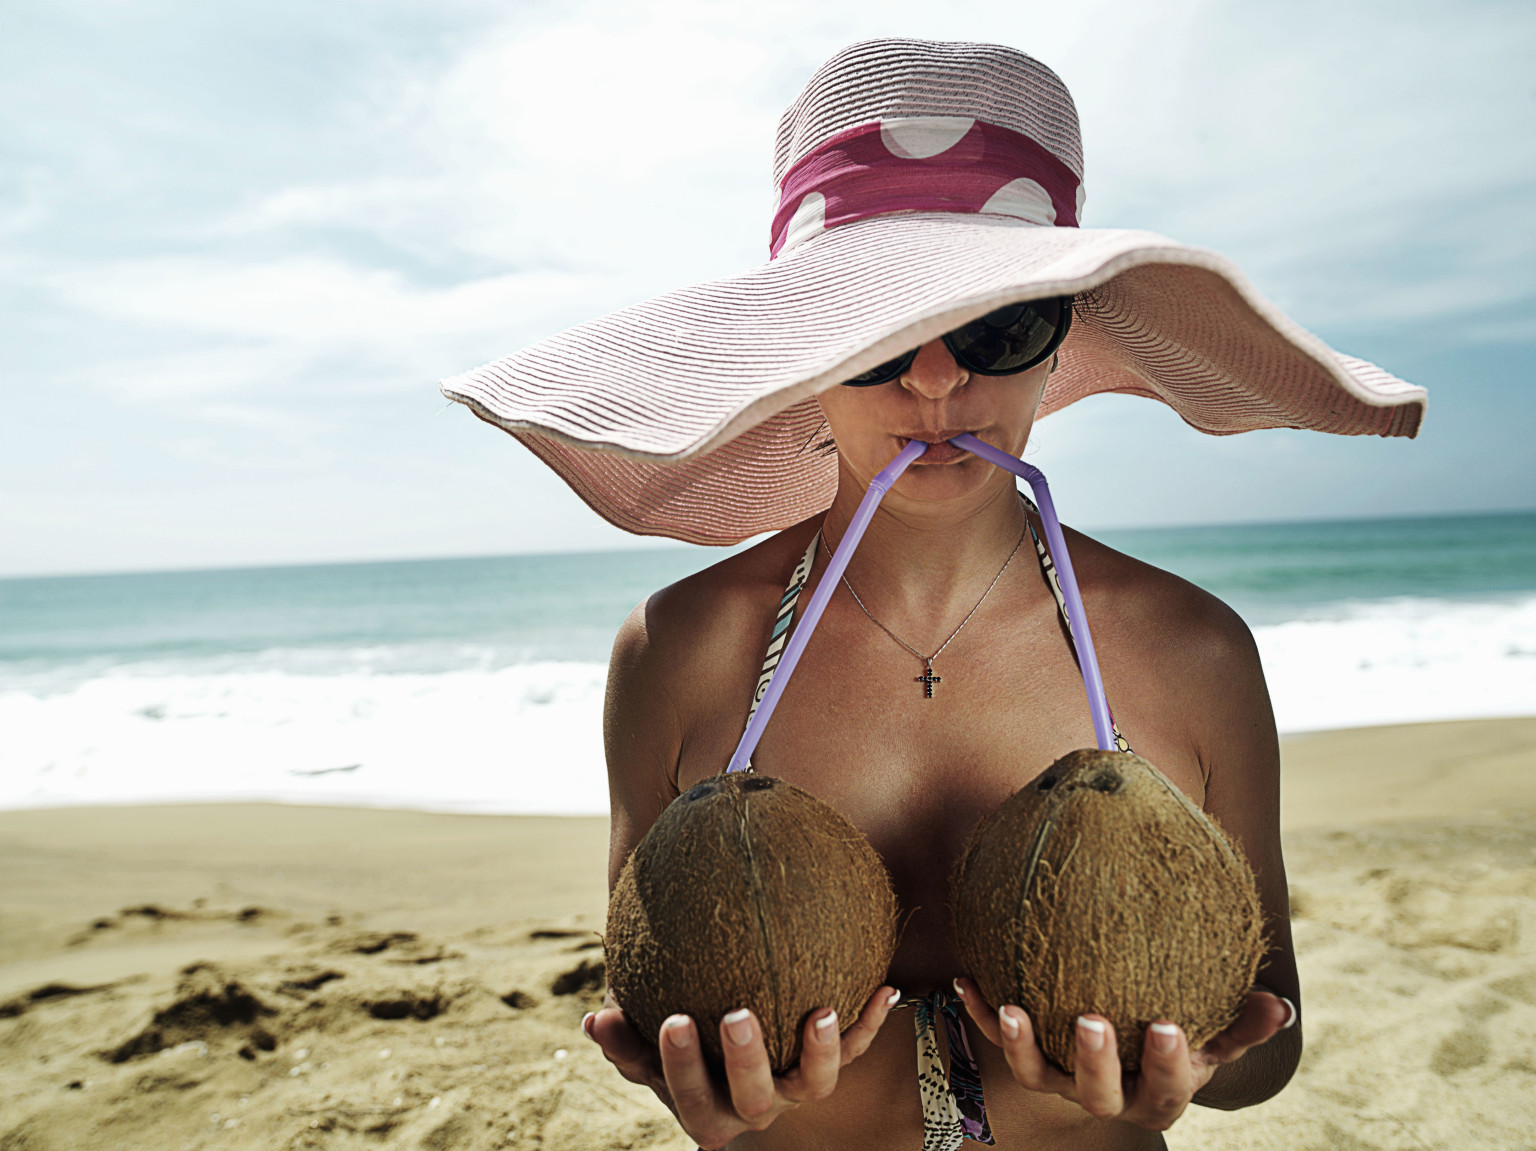 Is Drinking Too Much Coconut Water Bad For You